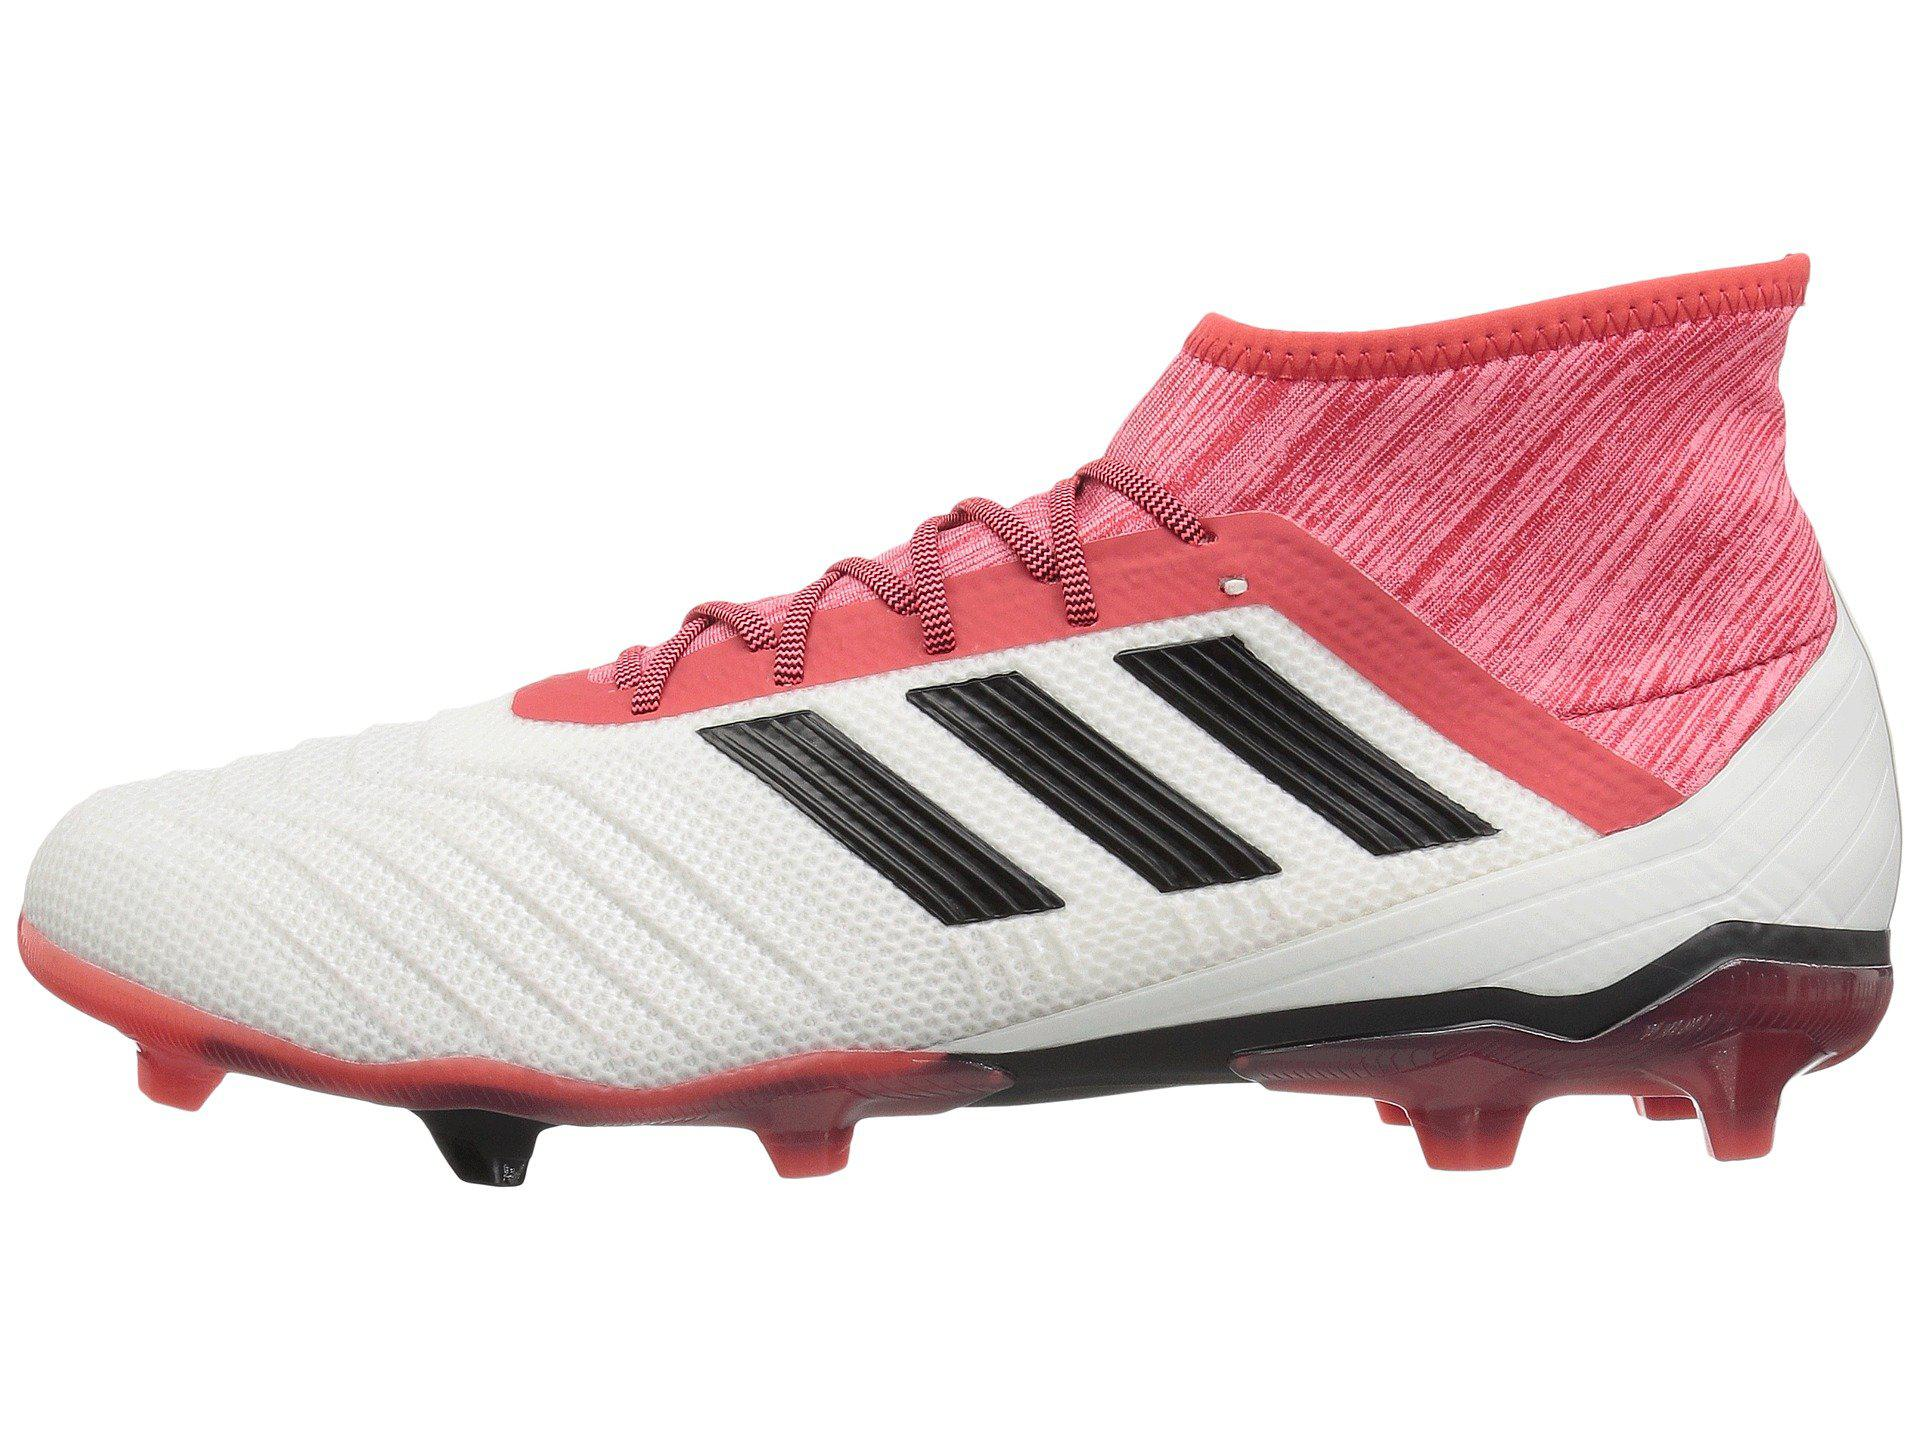 2611432c9a2 Lyst - adidas Predator 18.2 Fg in Pink for Men